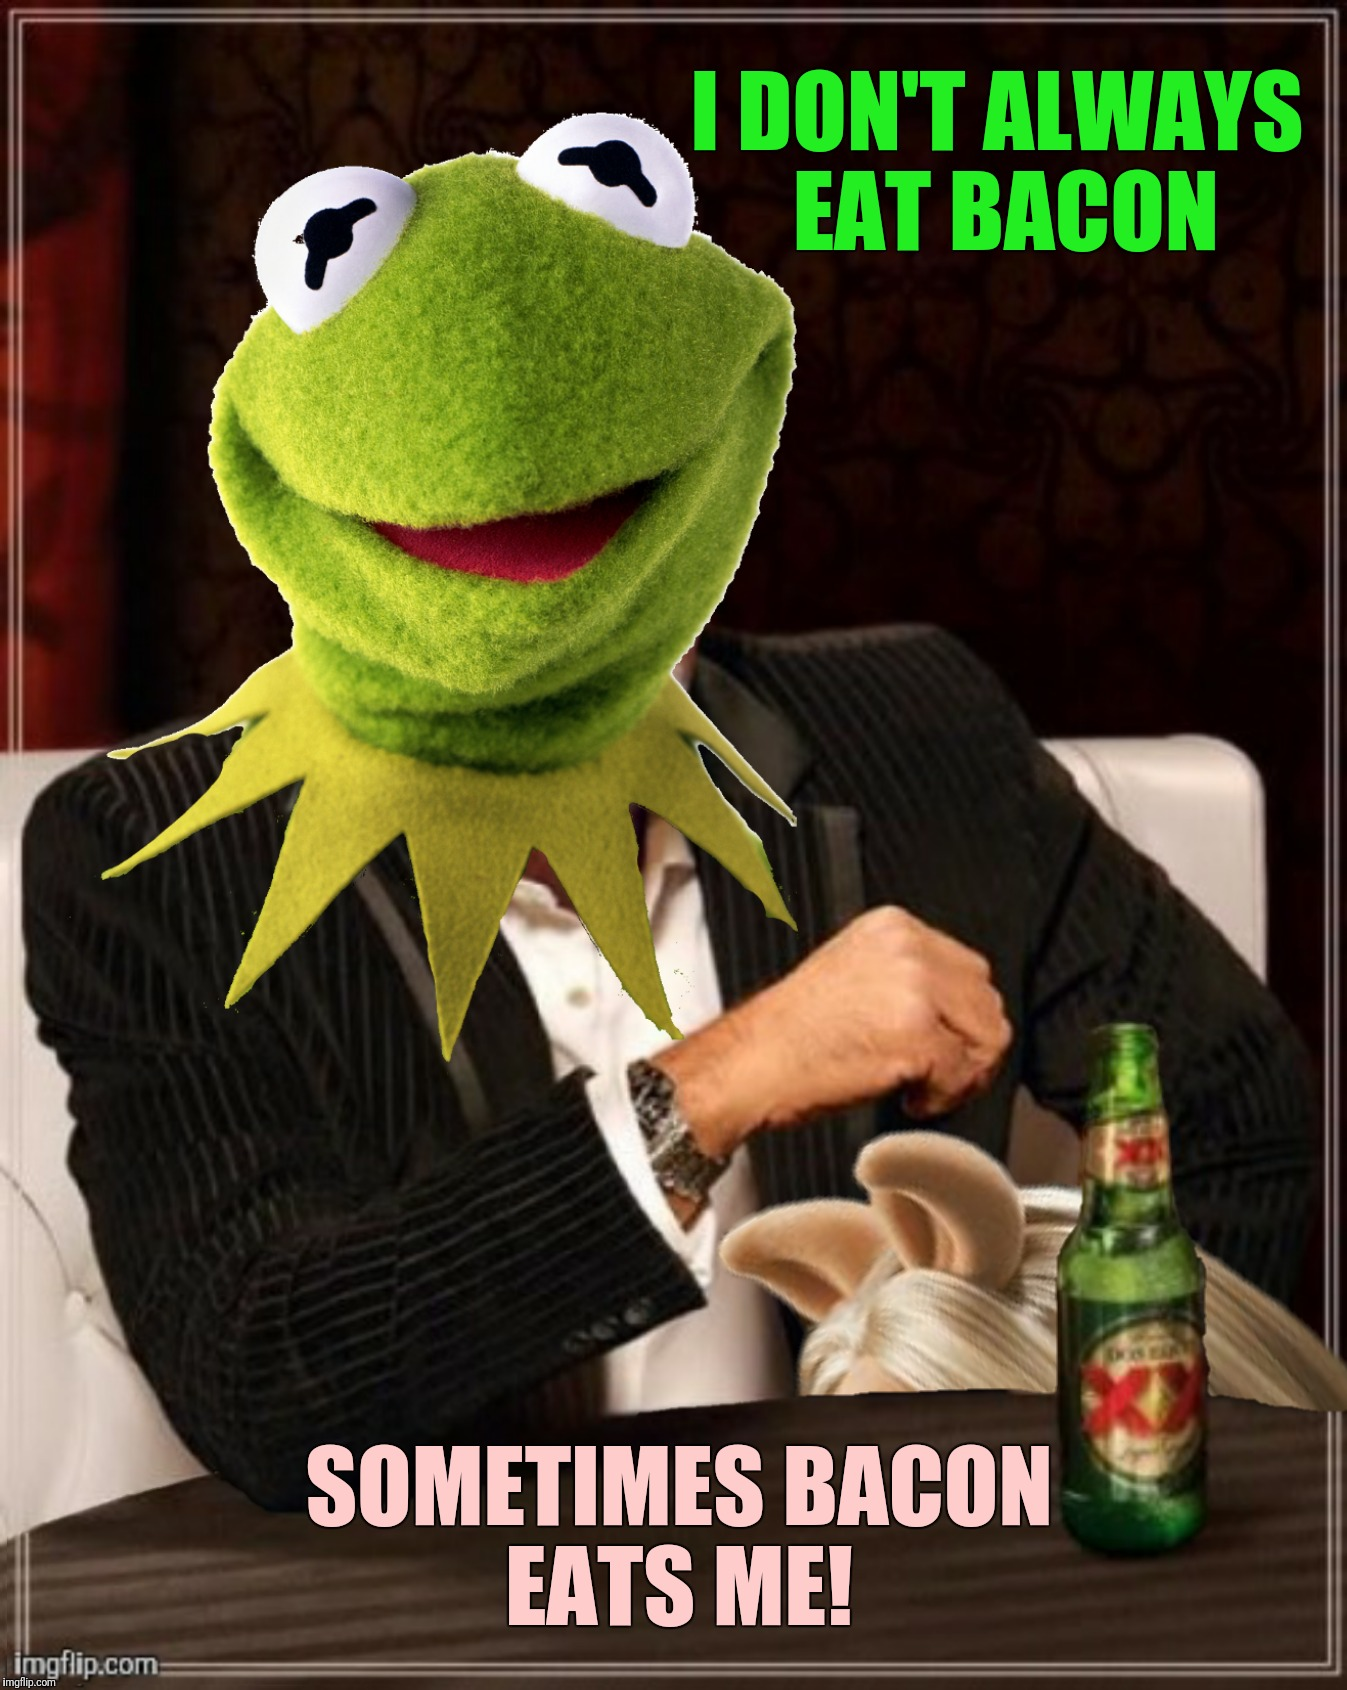 A resubmission suggested by Phantasmemegoric.  Bad Photoshop Sunday meets Frog Week June 4-10, a JBmemegeek & giveuahint event | I DON'T ALWAYS EAT BACON SOMETIMES BACON EATS ME! | image tagged in bad photoshop sunday,frog week,the most interesting man in the world,the most interesting frog in the world,miss piggy | made w/ Imgflip meme maker